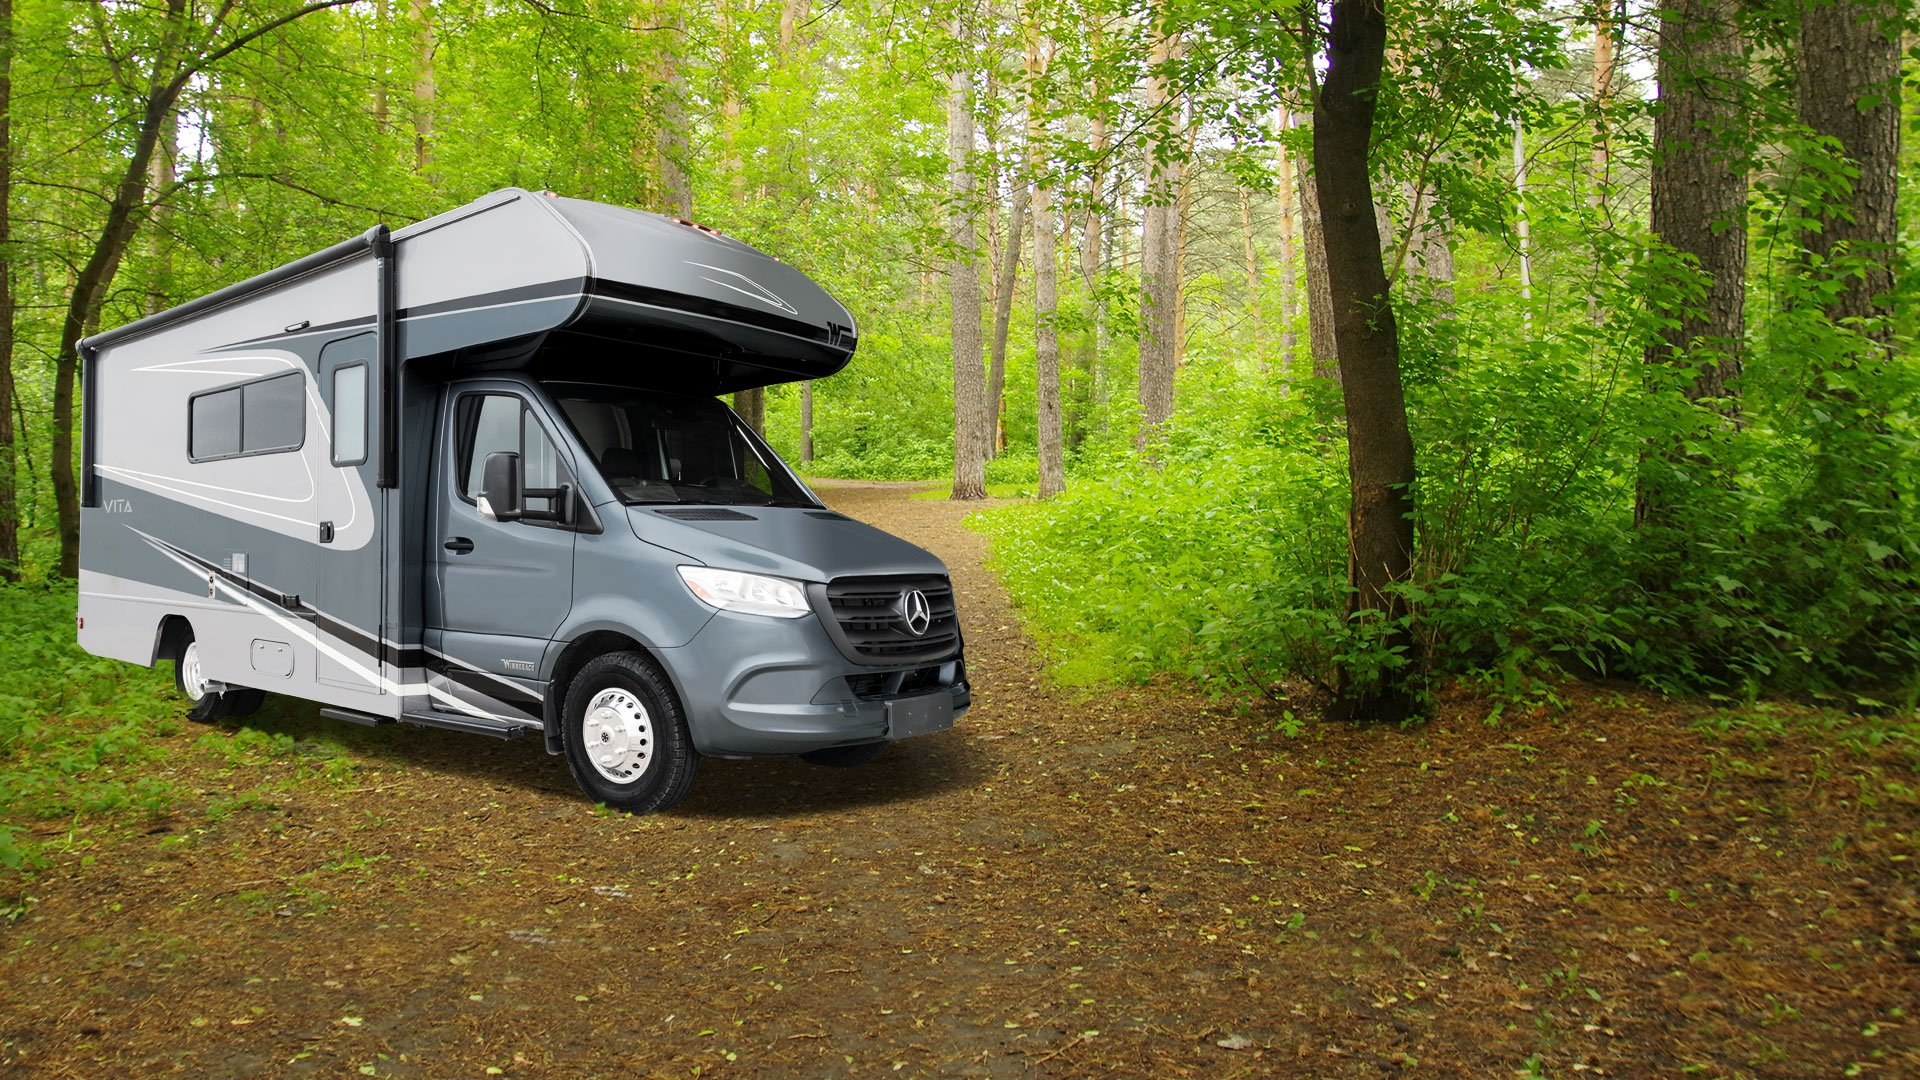 winnebago vita class c motorhome parked in the forest